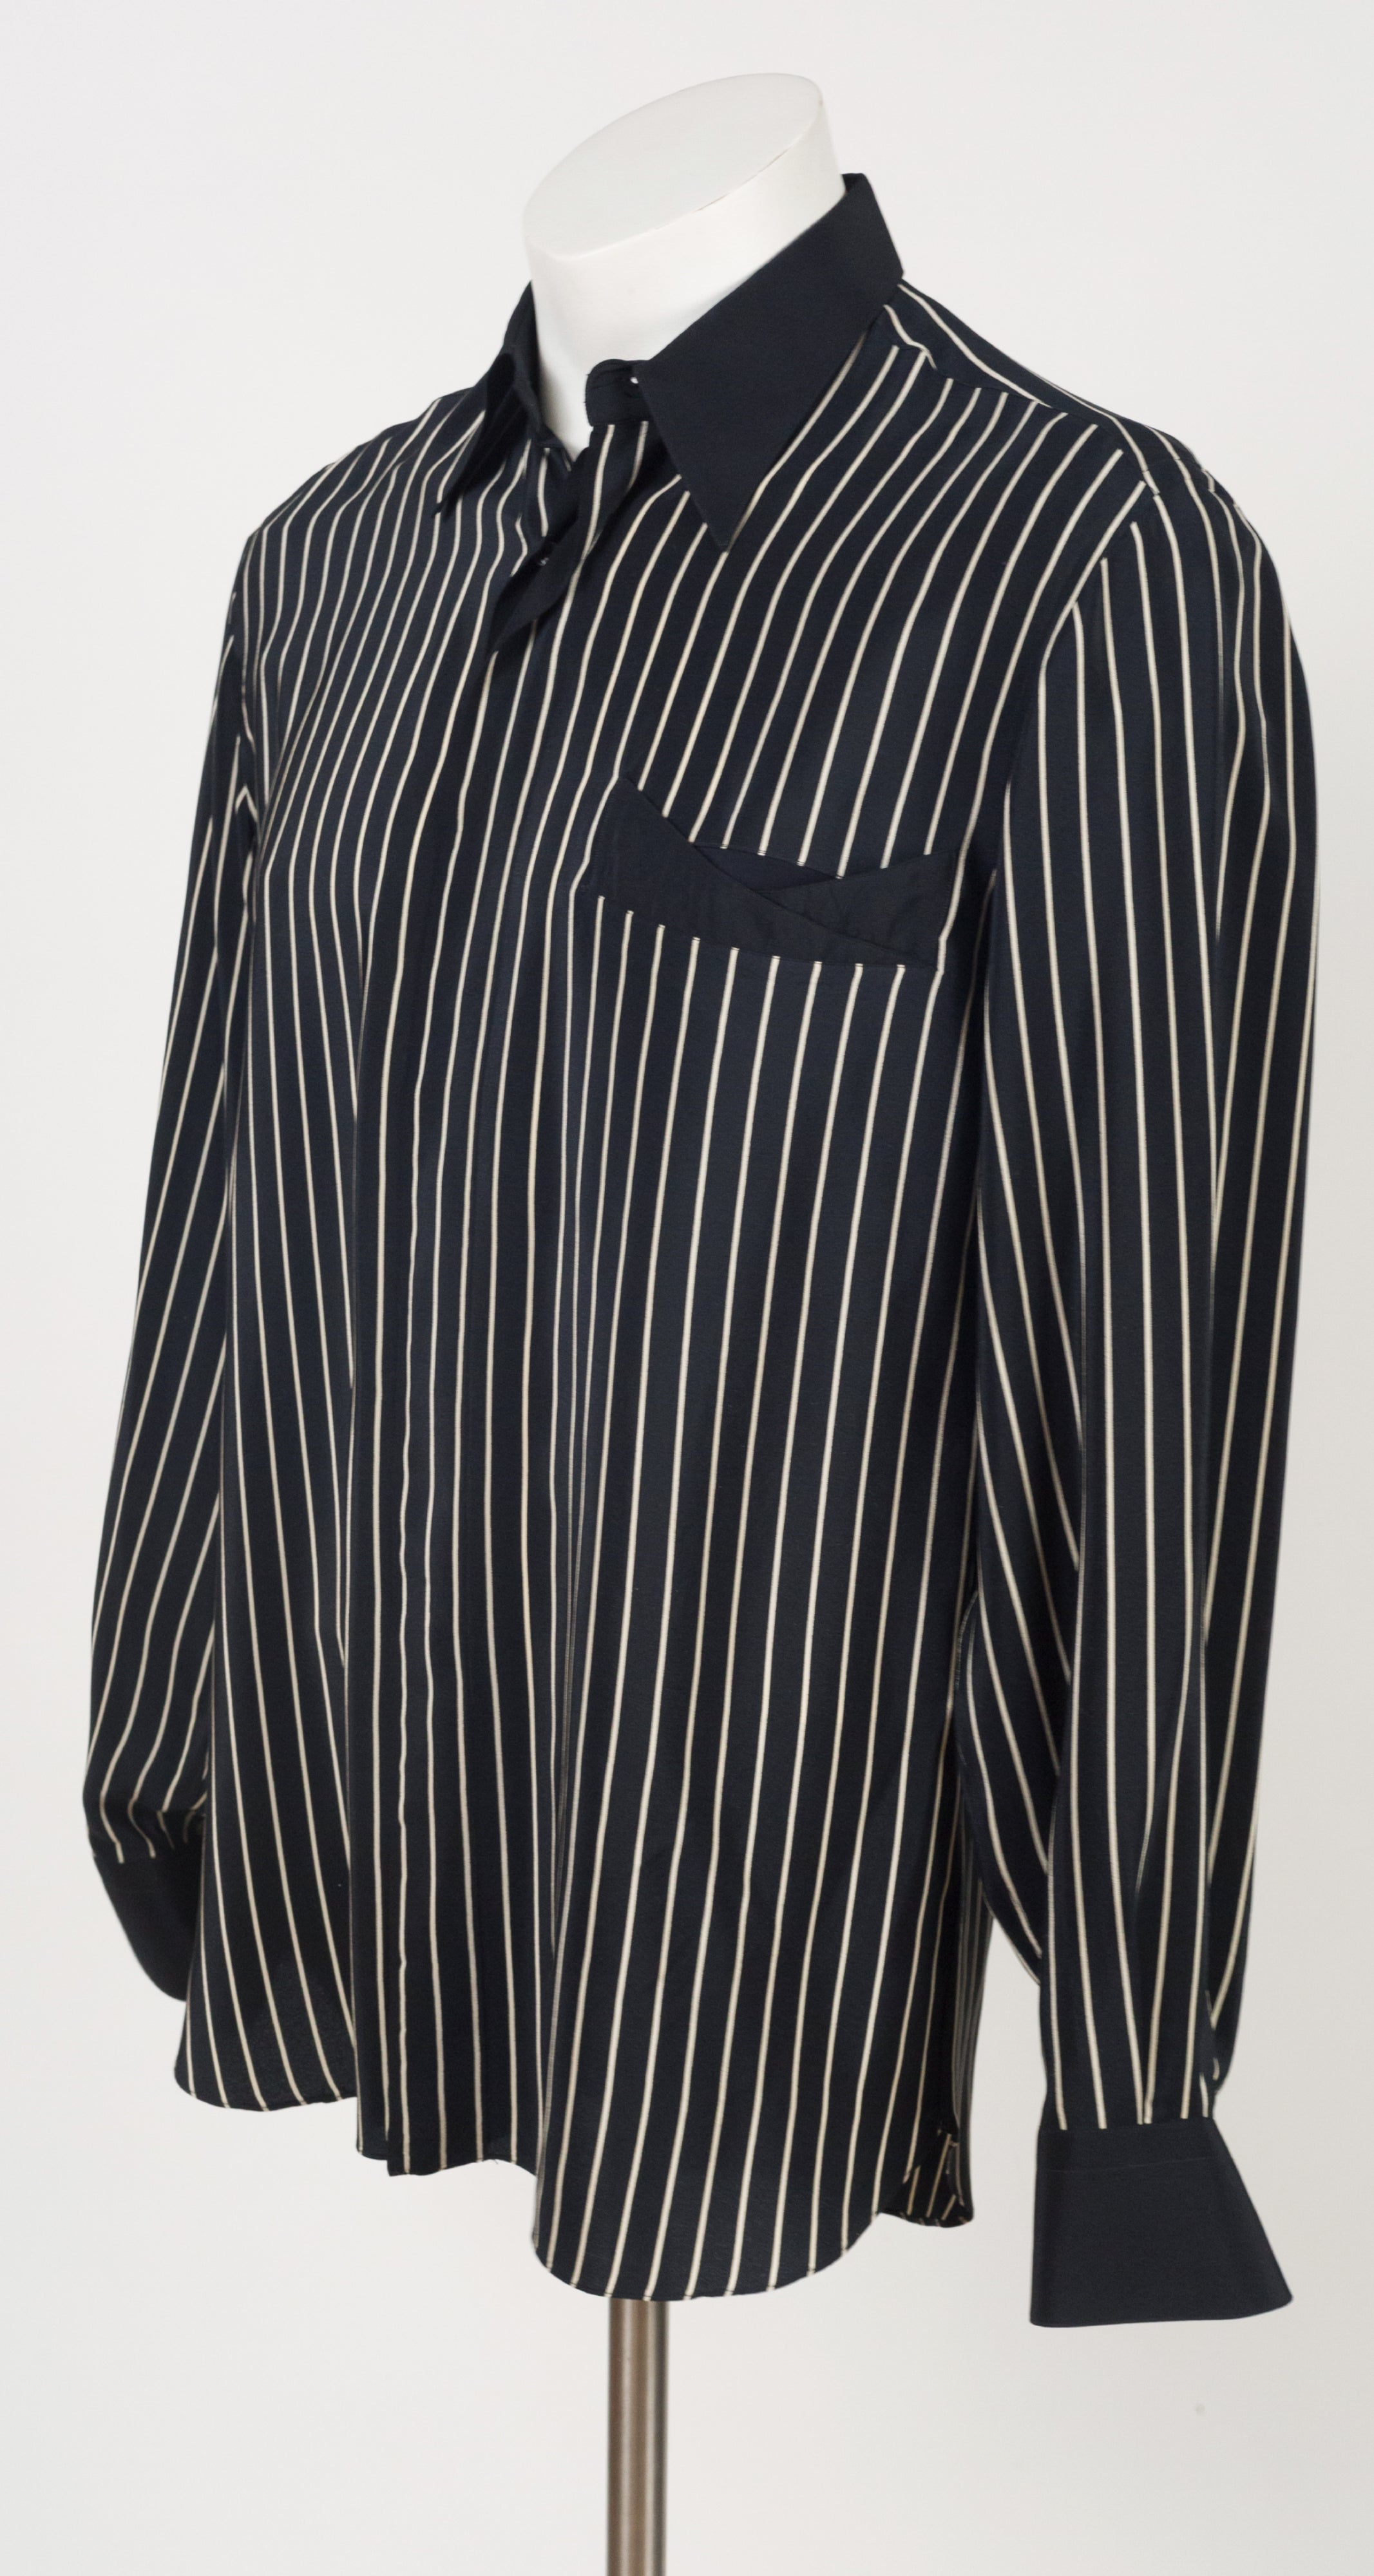 1980s Men's Black & Cream Striped Silk Collared Shirt